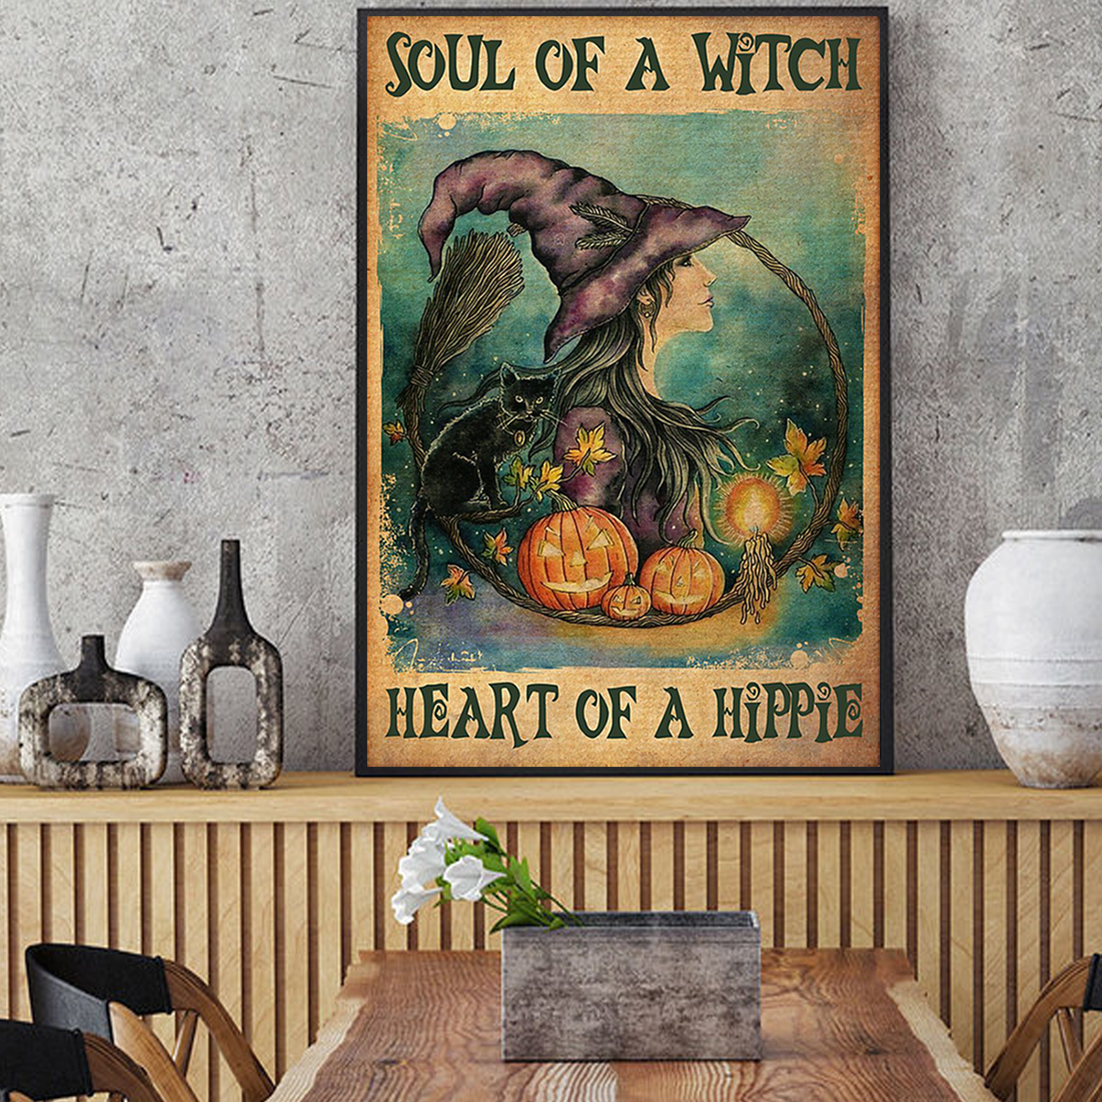 Soul of a witch health of a hippie poster A1